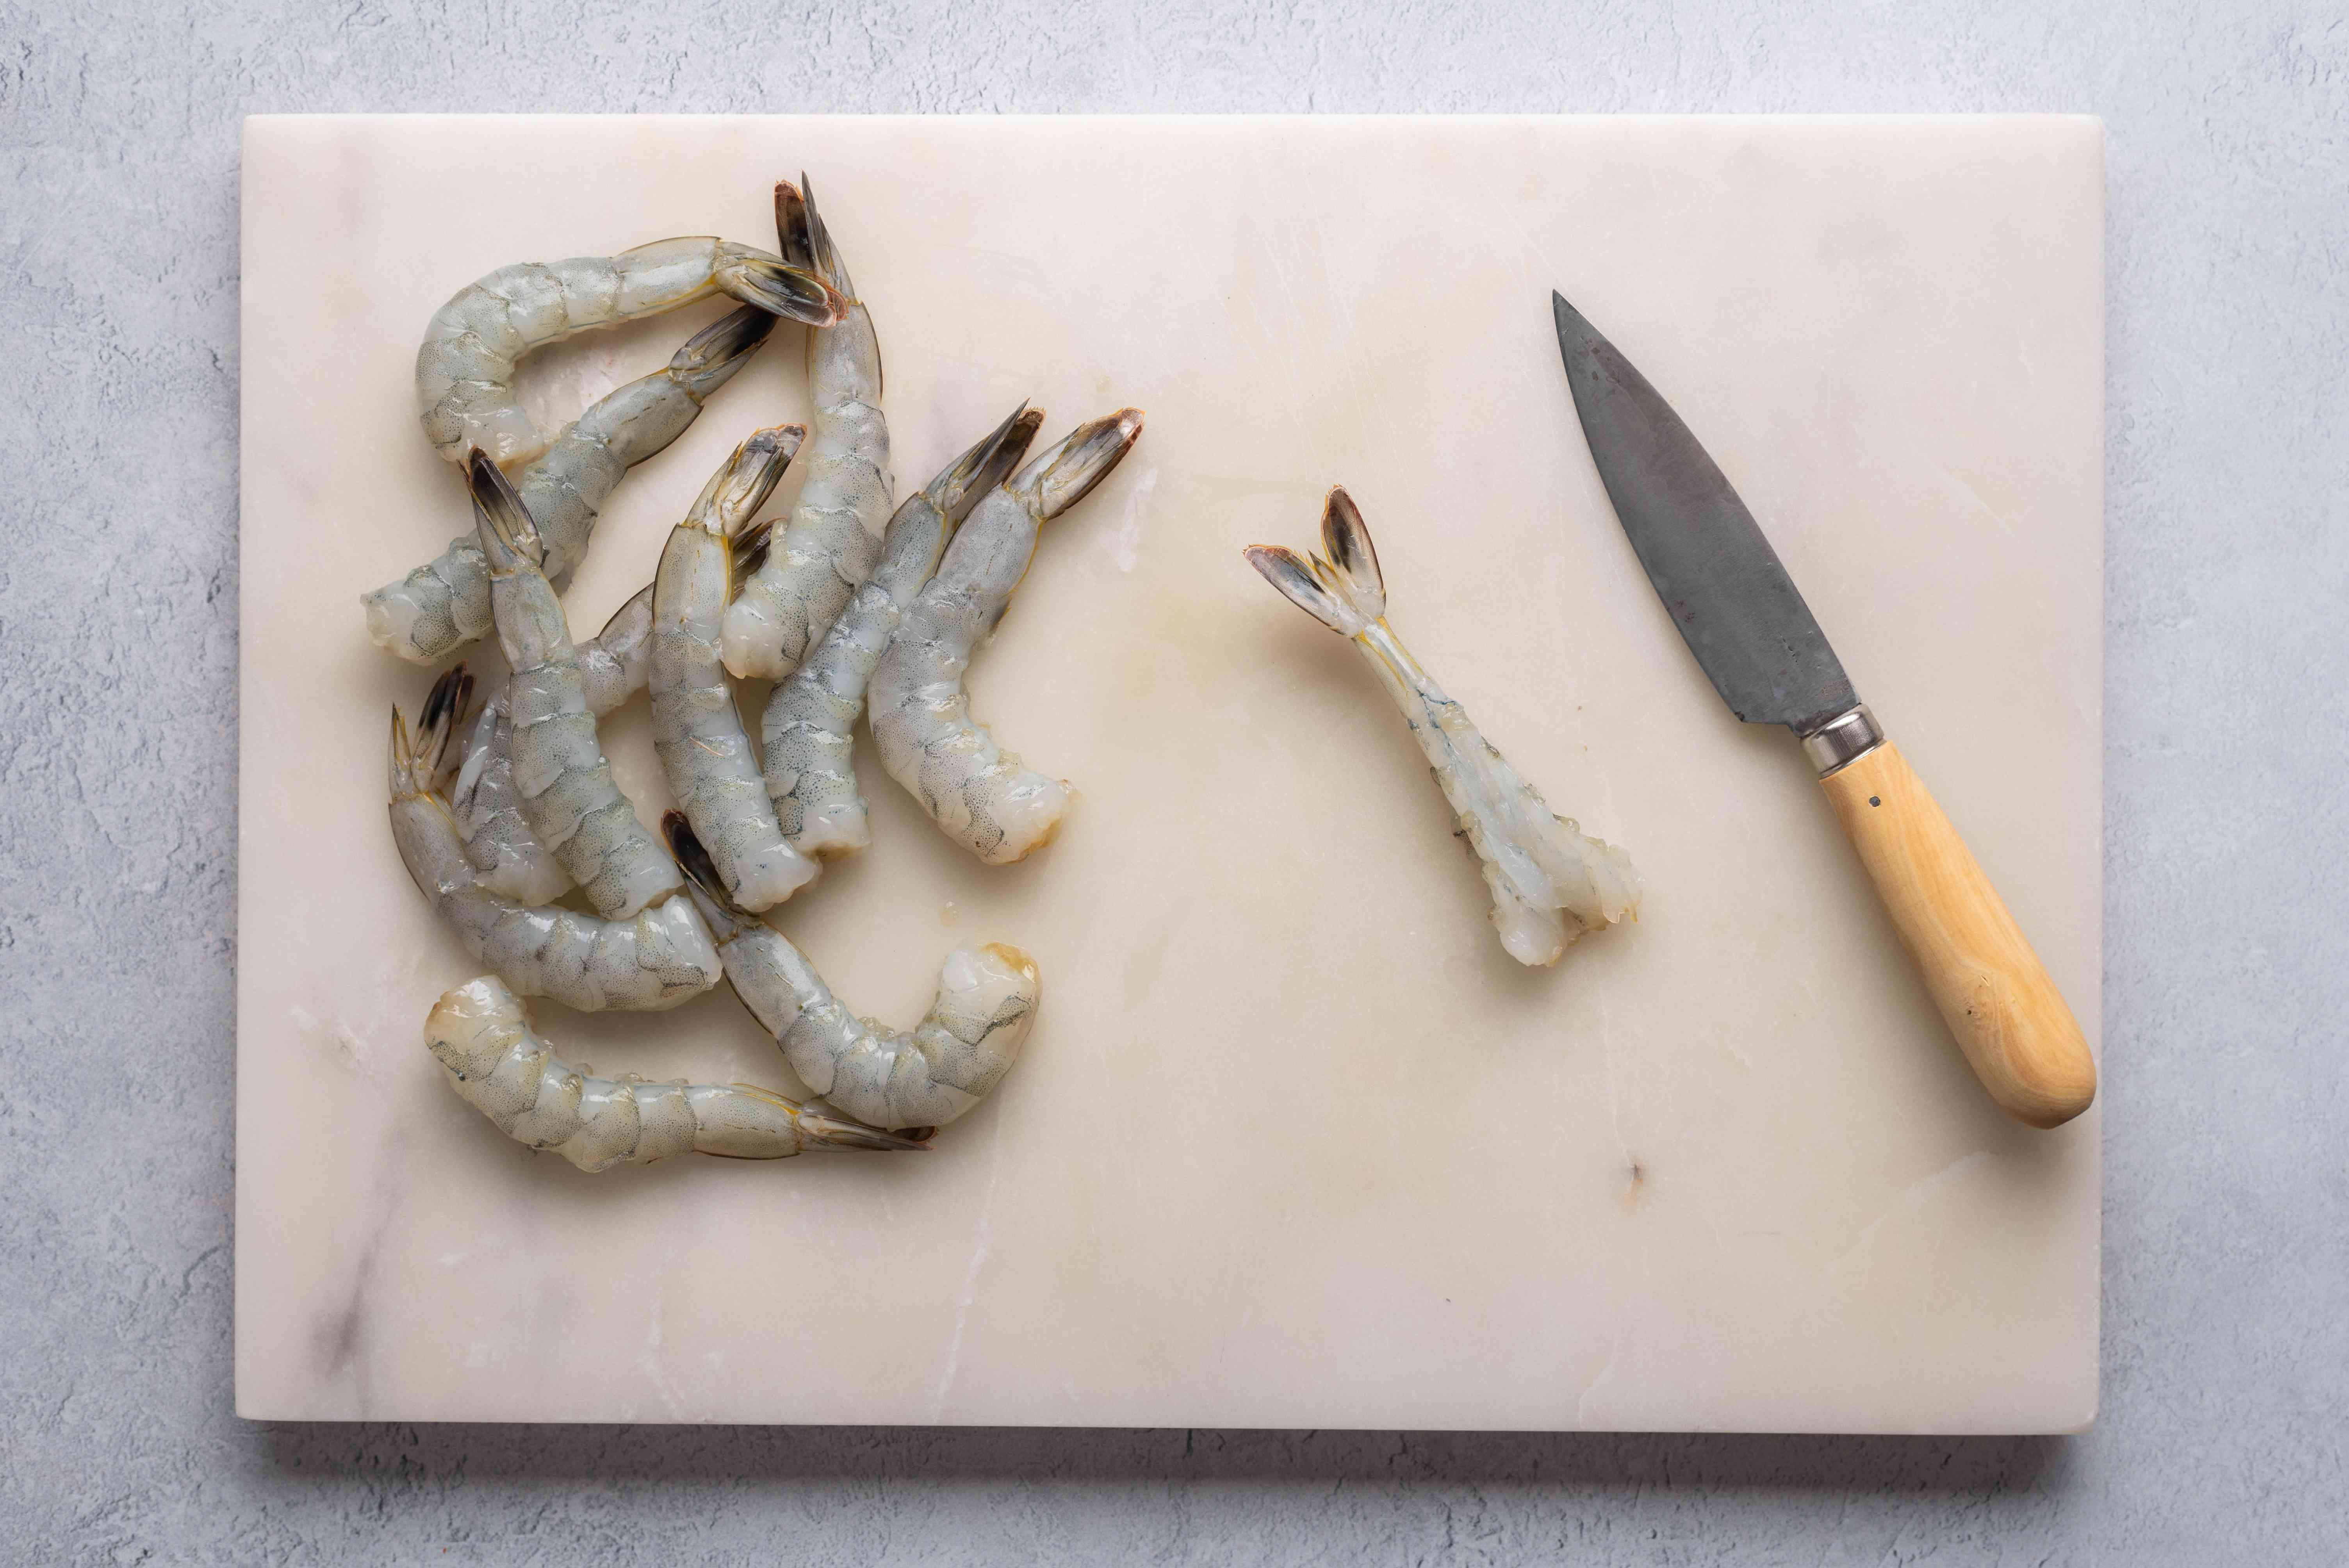 Place the shrimp on a cutting board and make another cut along the inside curve of the shrimp